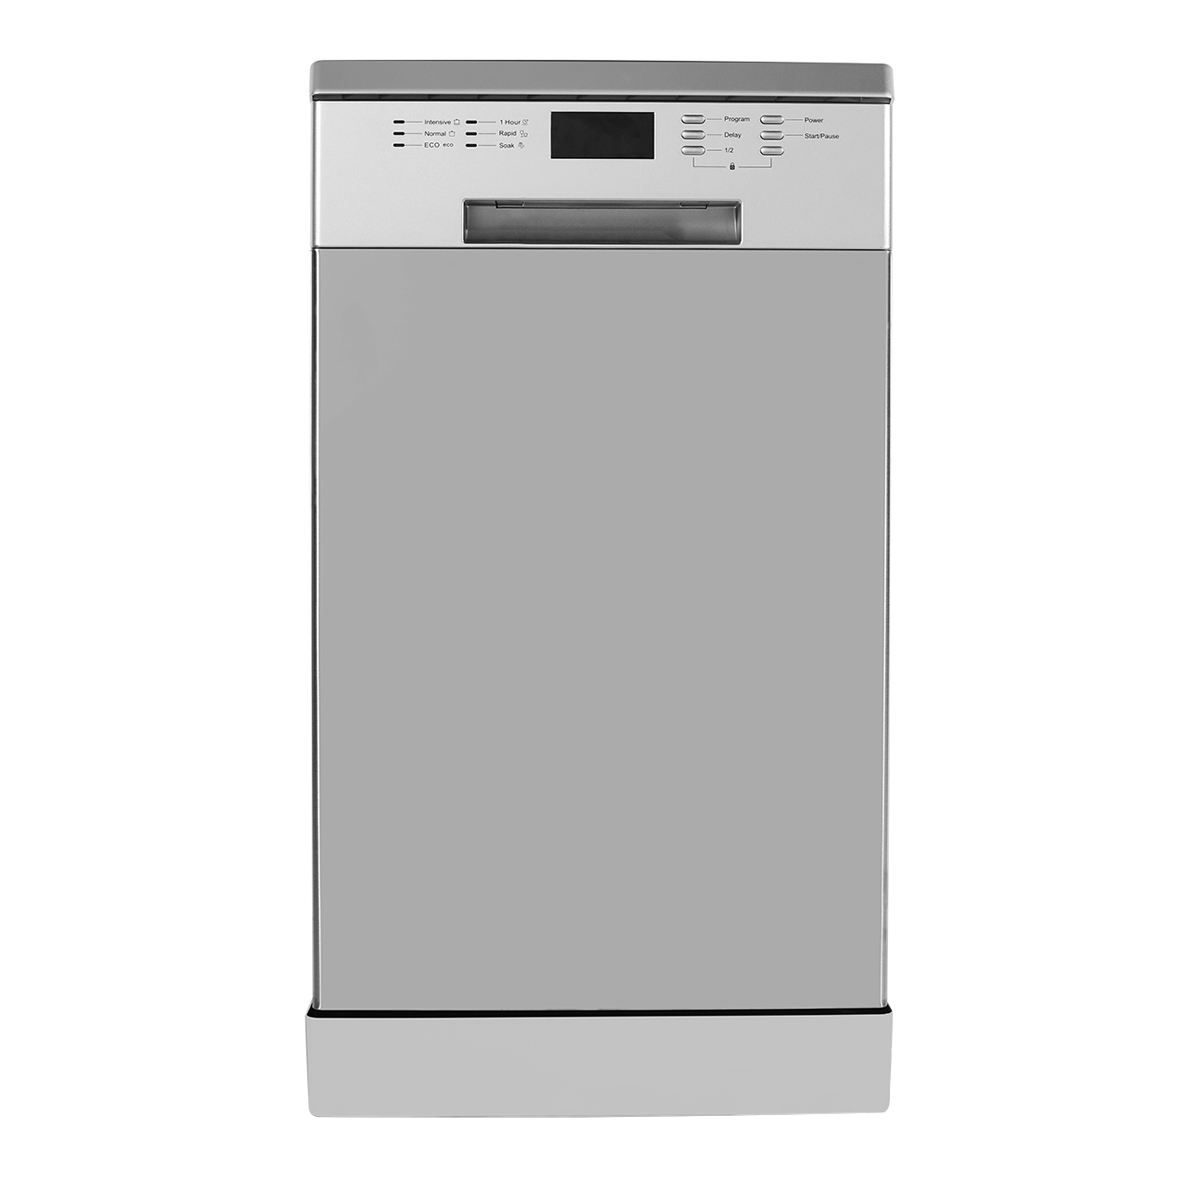 Omega ODW300X Freestanding Dishwasher